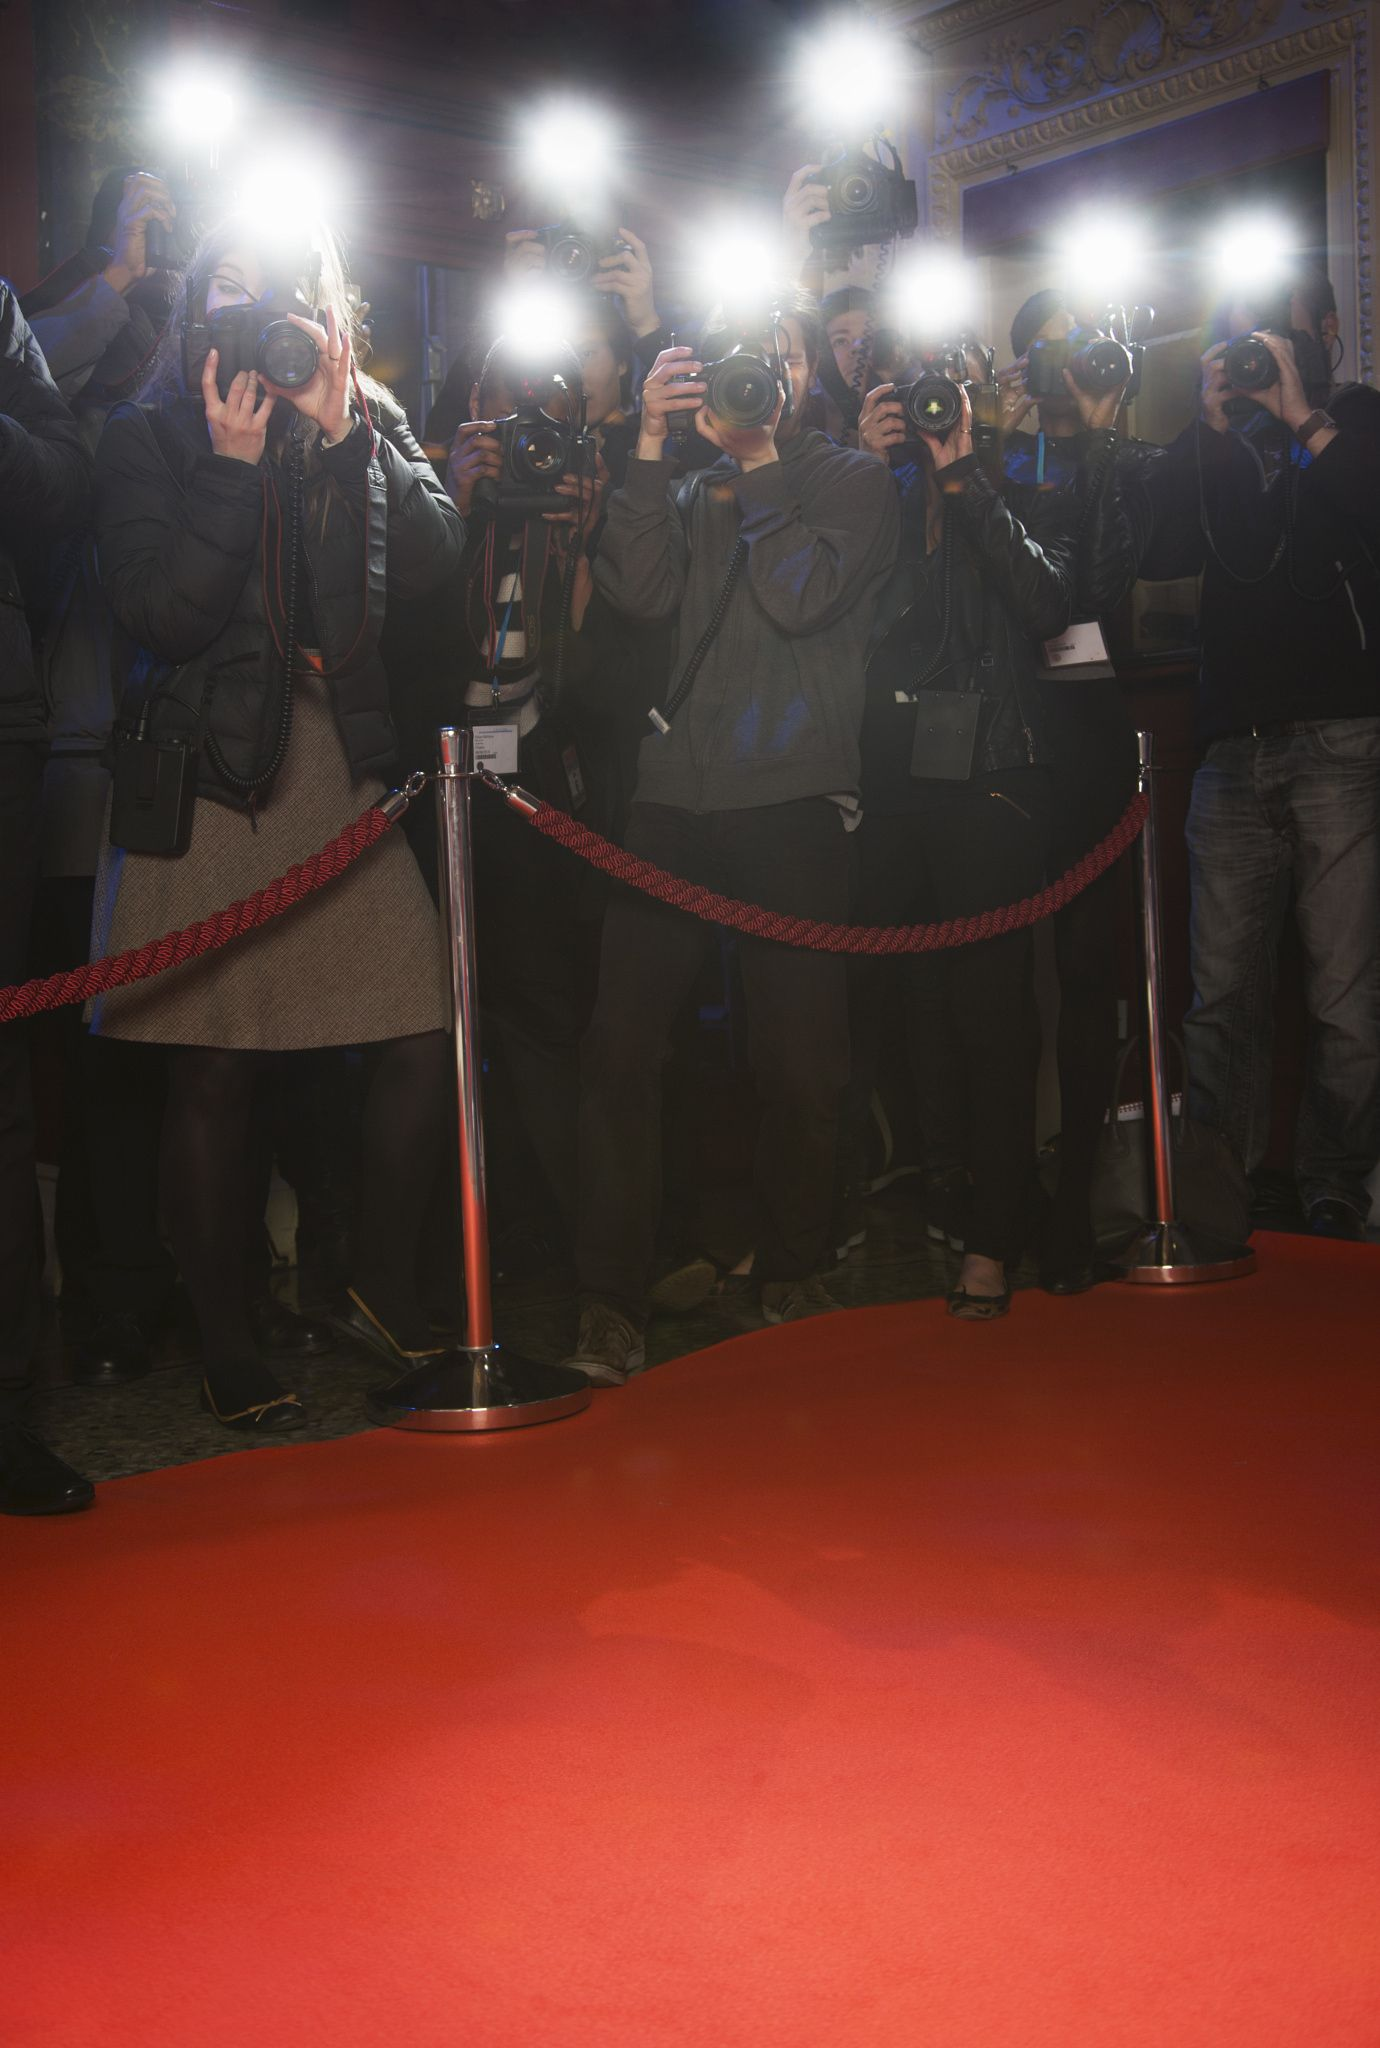 Paparazzi Using Flash Photography At Red Carpet Event By